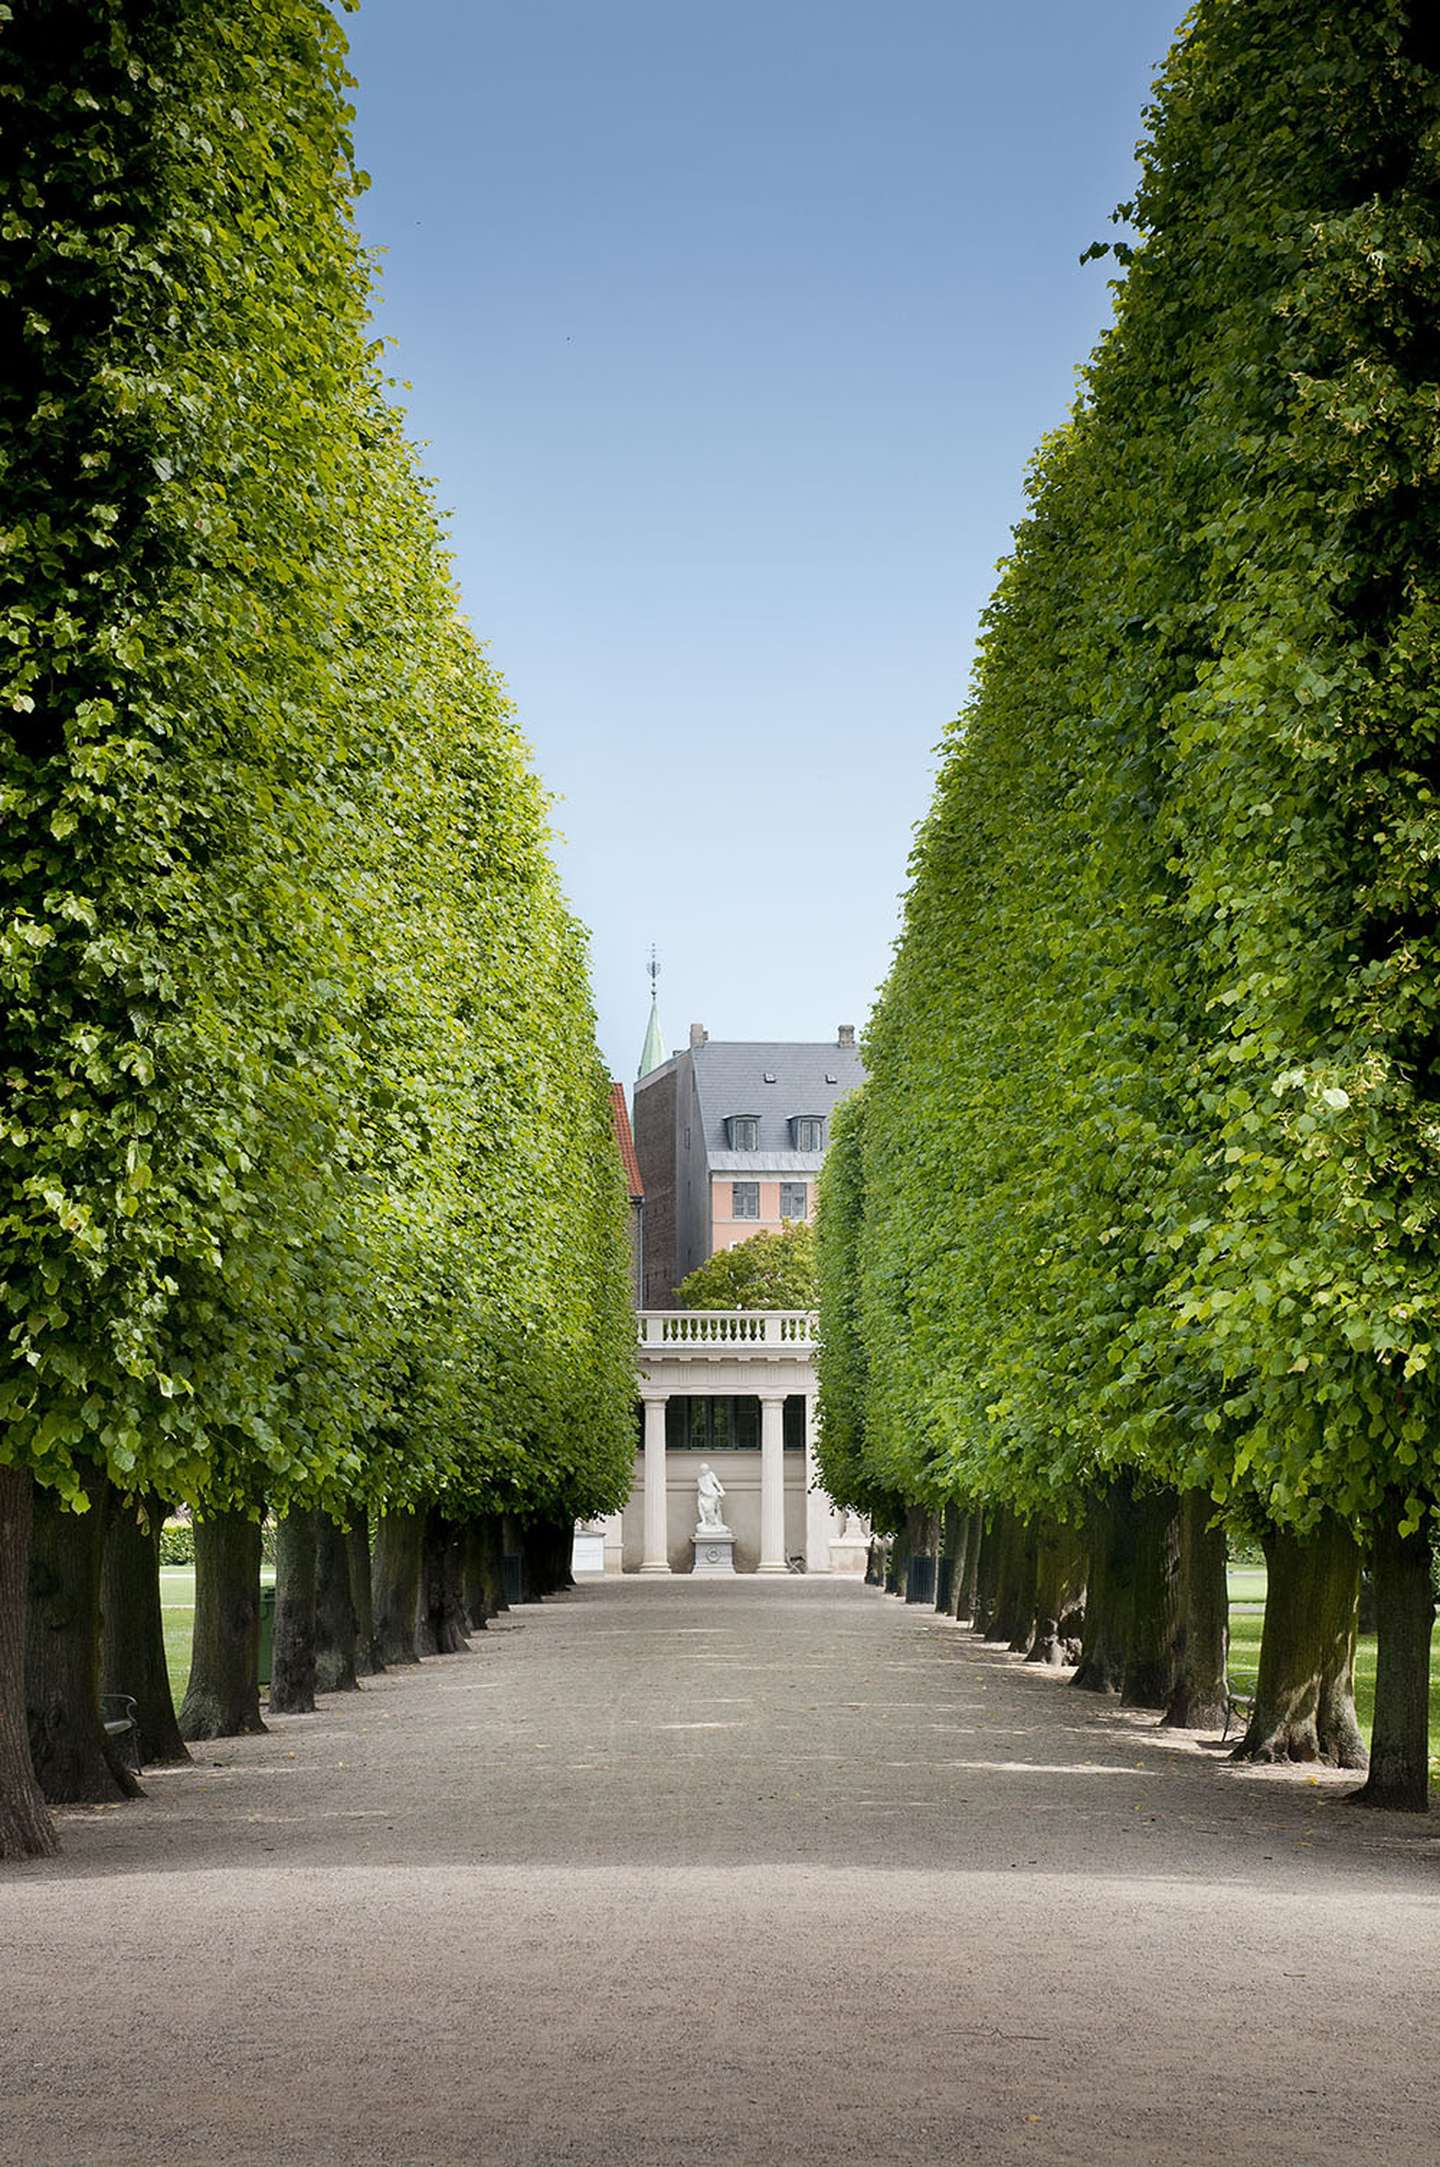 One of the many avenues in the King's Garden.